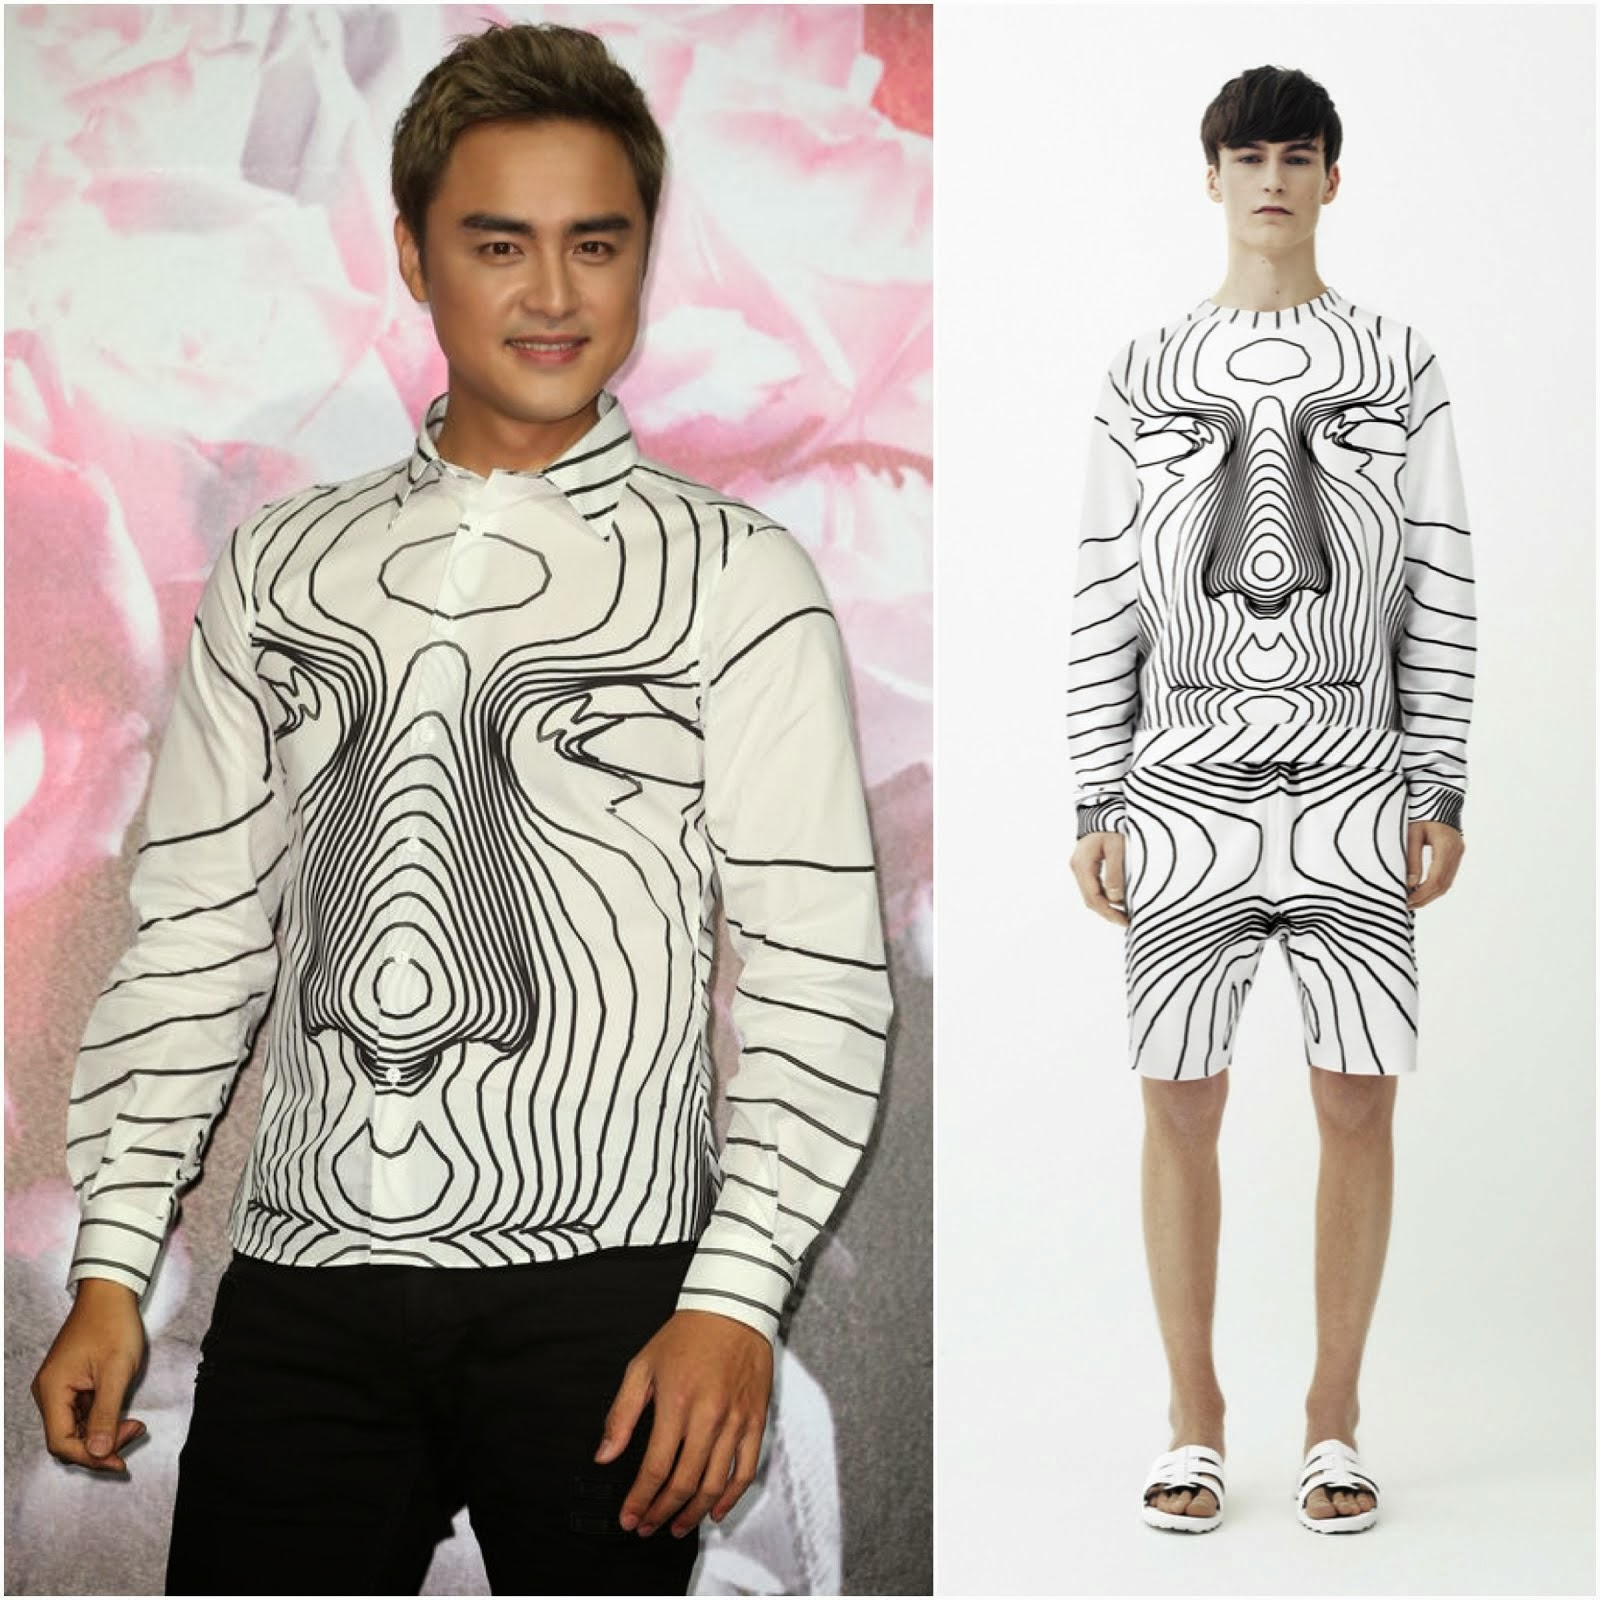 Ming Dao in Christopher Kane SS2014 face digital shirt - 'Lovelorn Aesthetics 失恋美学' album release press conference 明道亮相首张个人专辑发布会